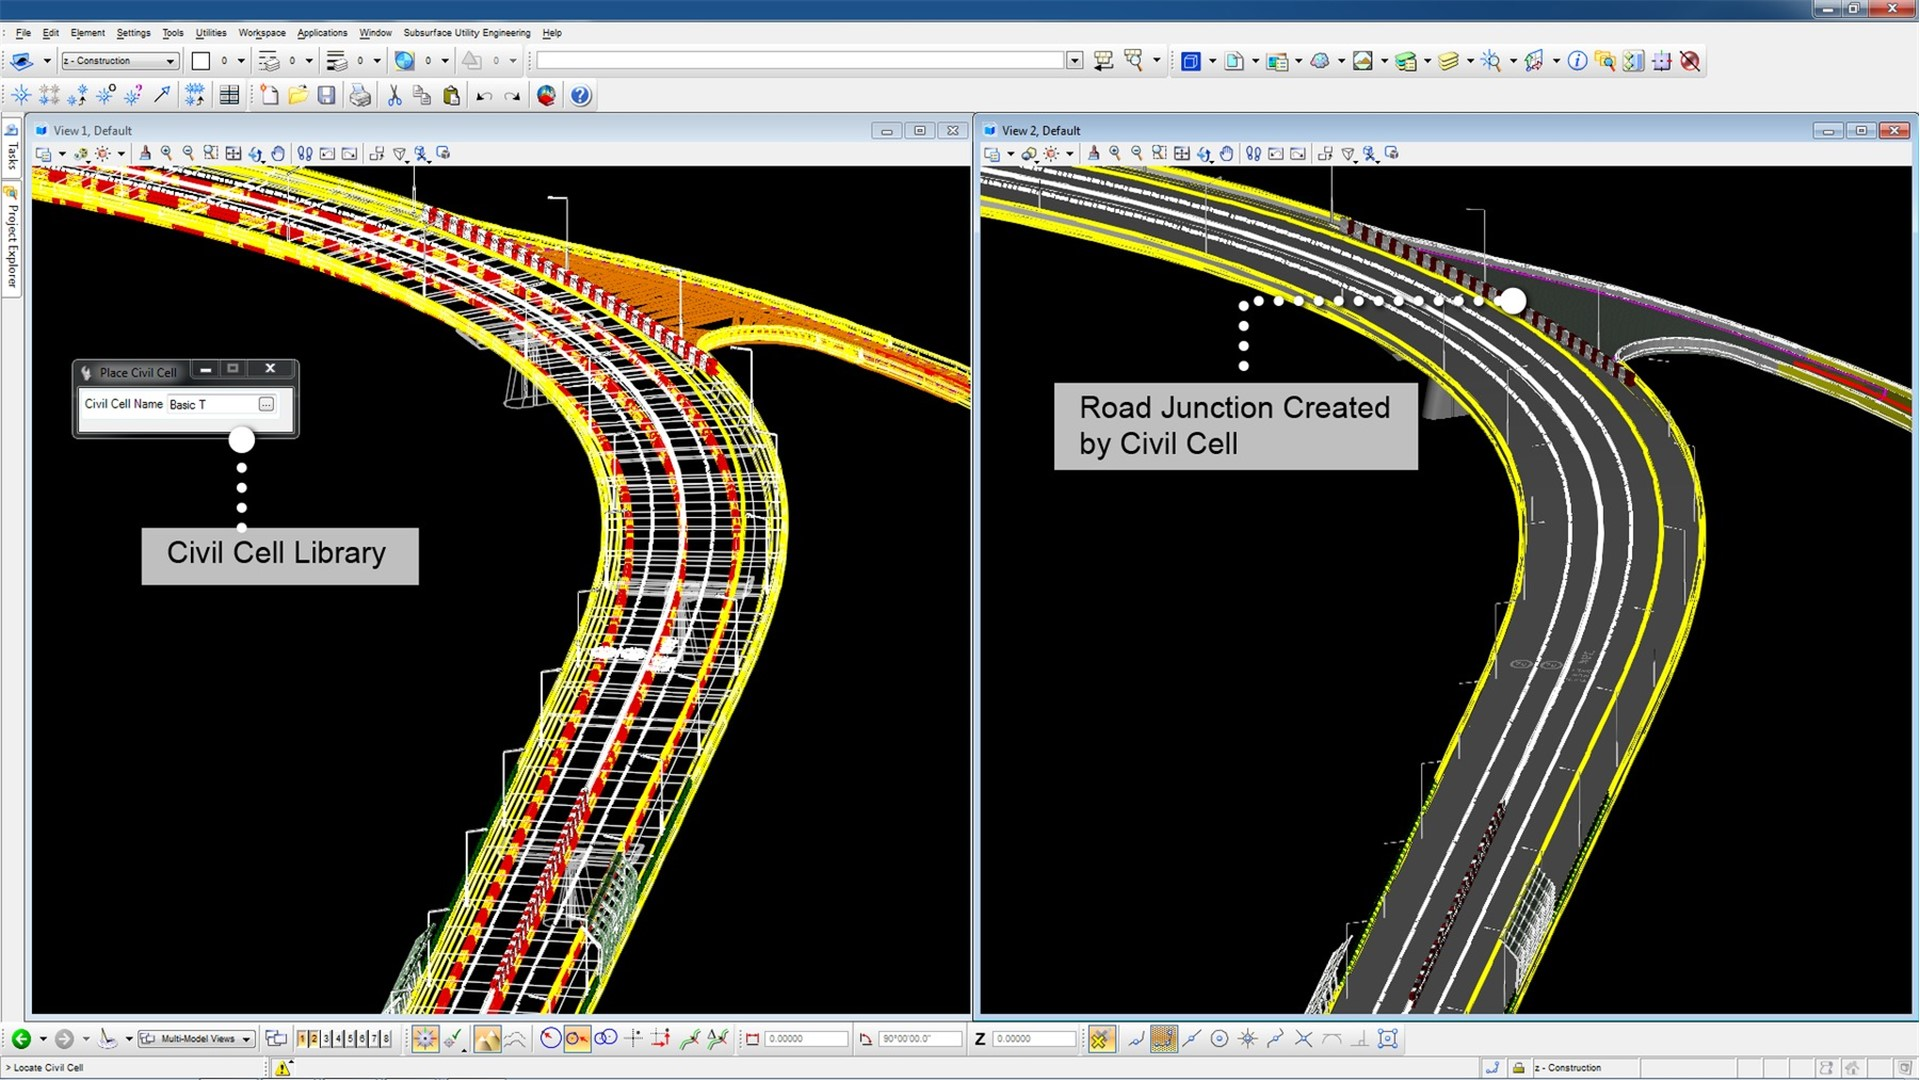 Civil and transportation mapping software geopak ces for Transportation engineering planning and design